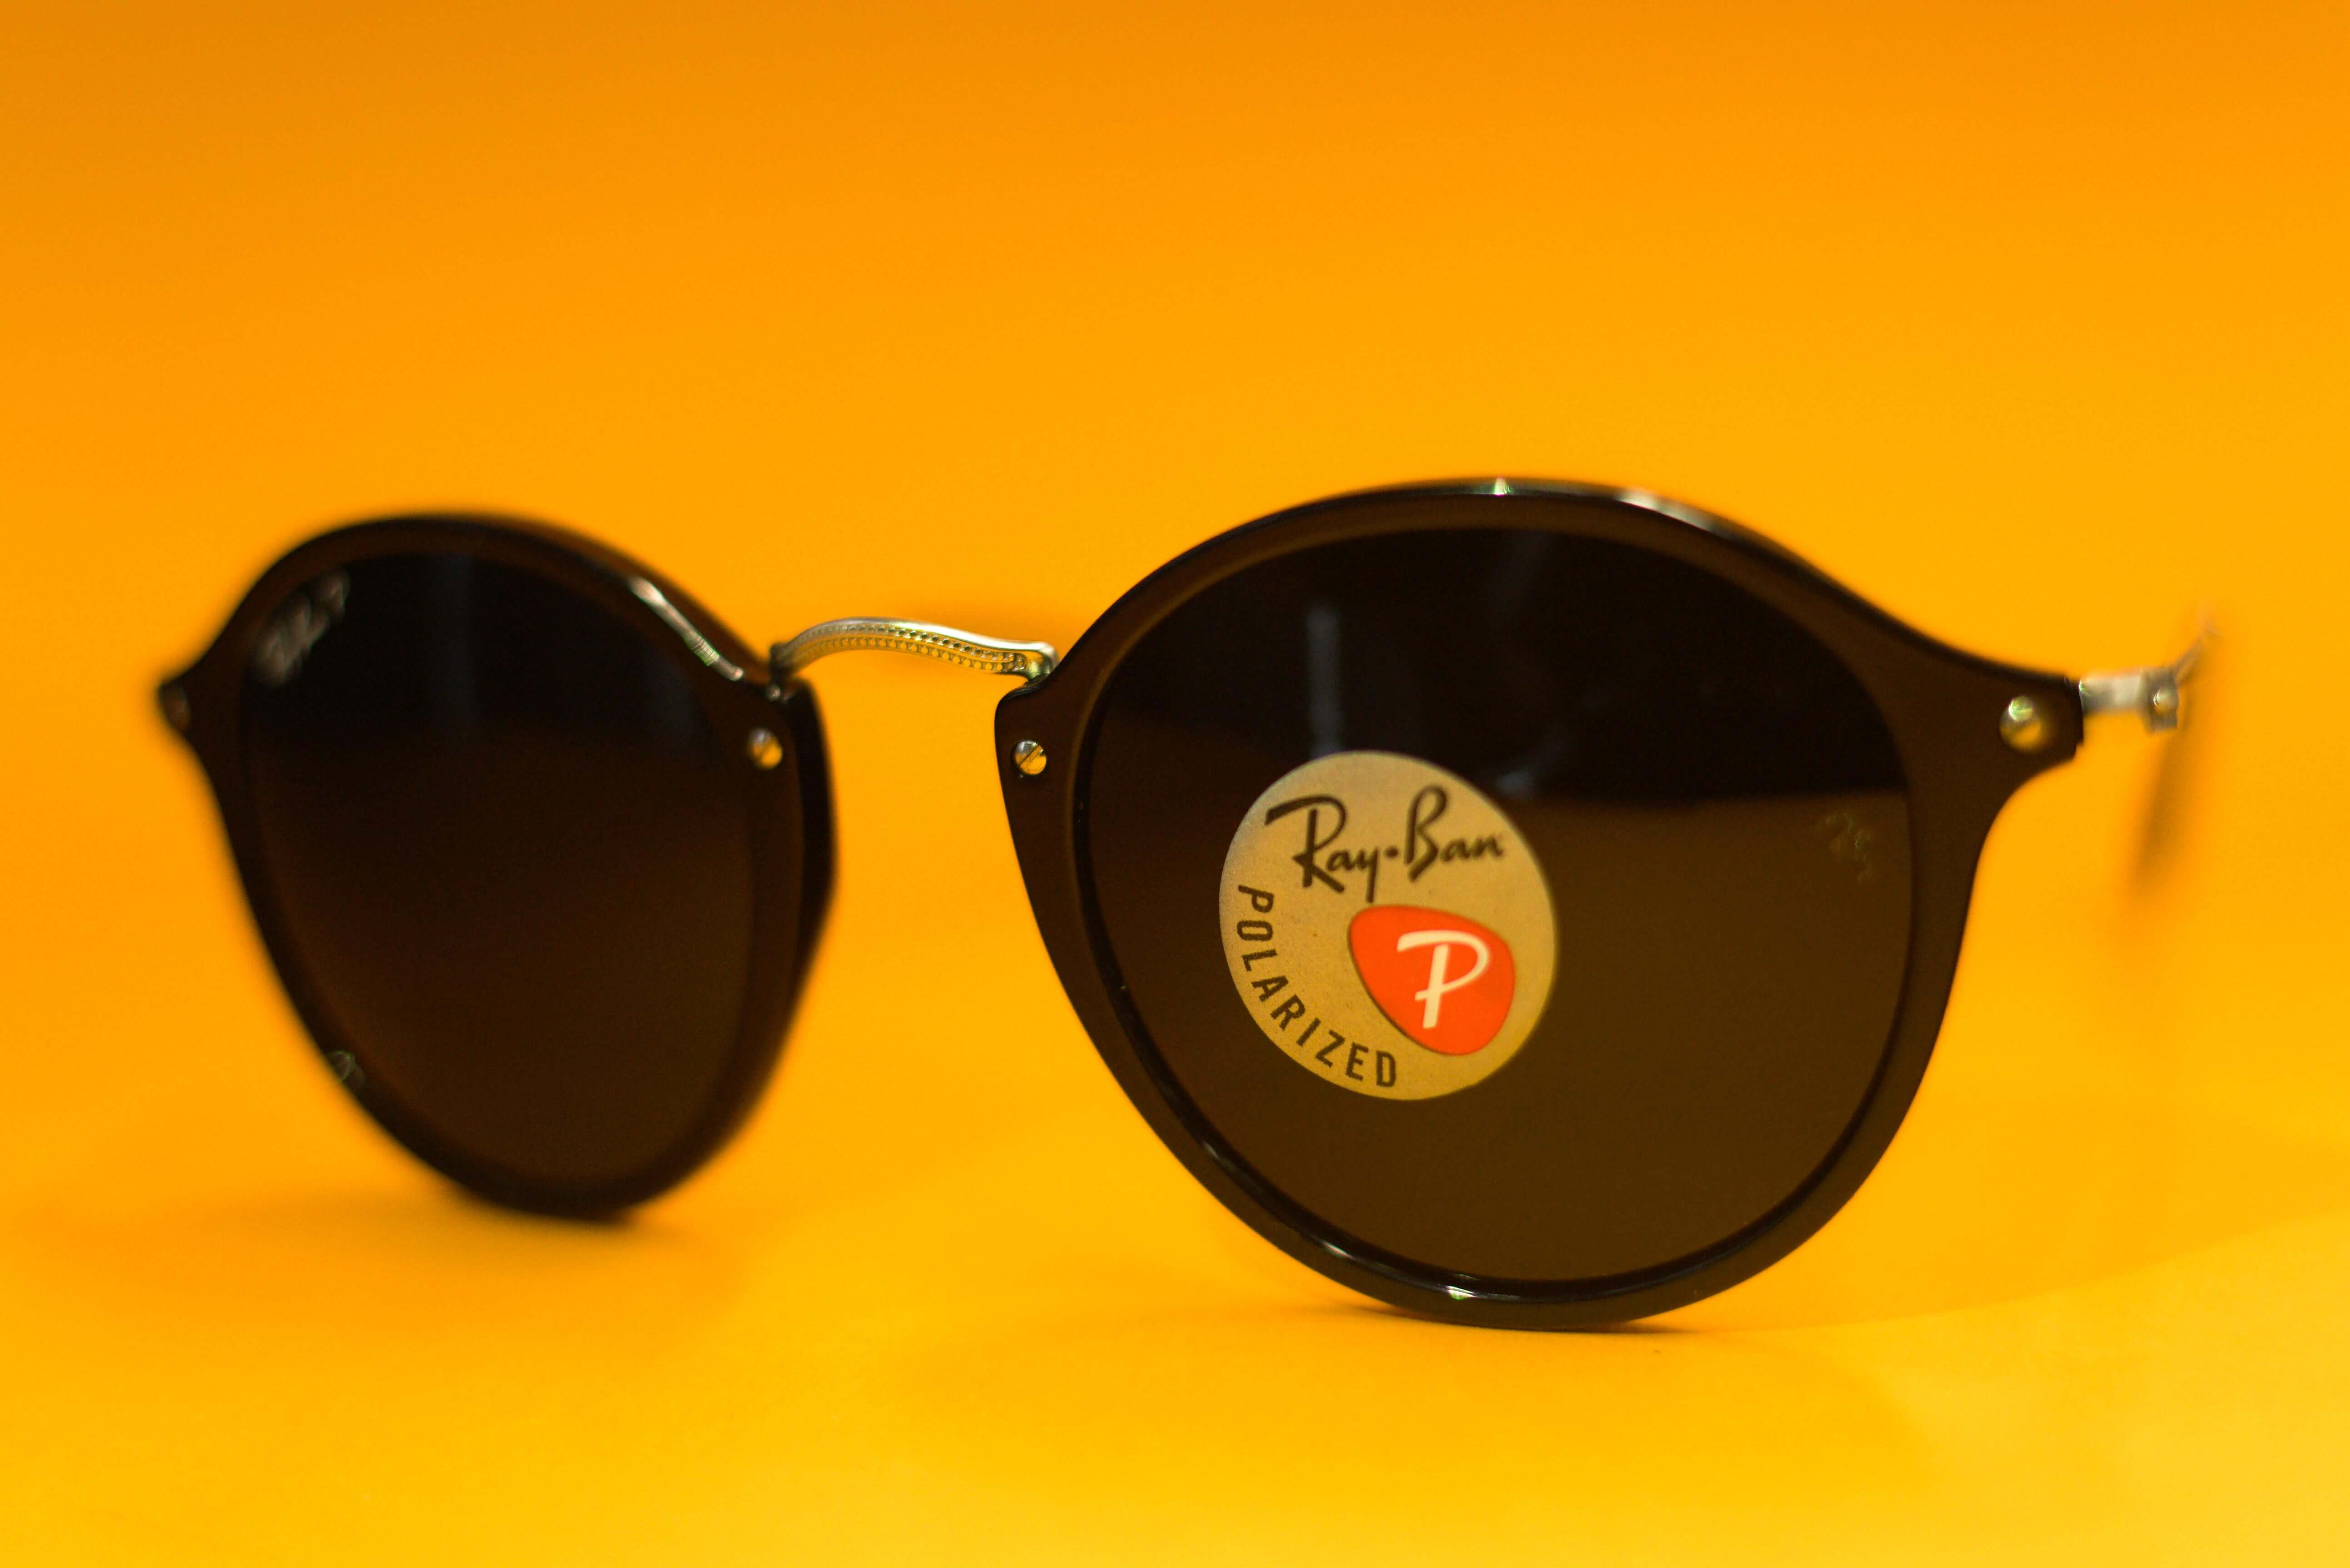 73e612ee69 Ray-Ban products also include a high quality sticker with Ray-Ban logo that  sticks to the lens by static. Any signs of glue under the sticker may  indicate ...